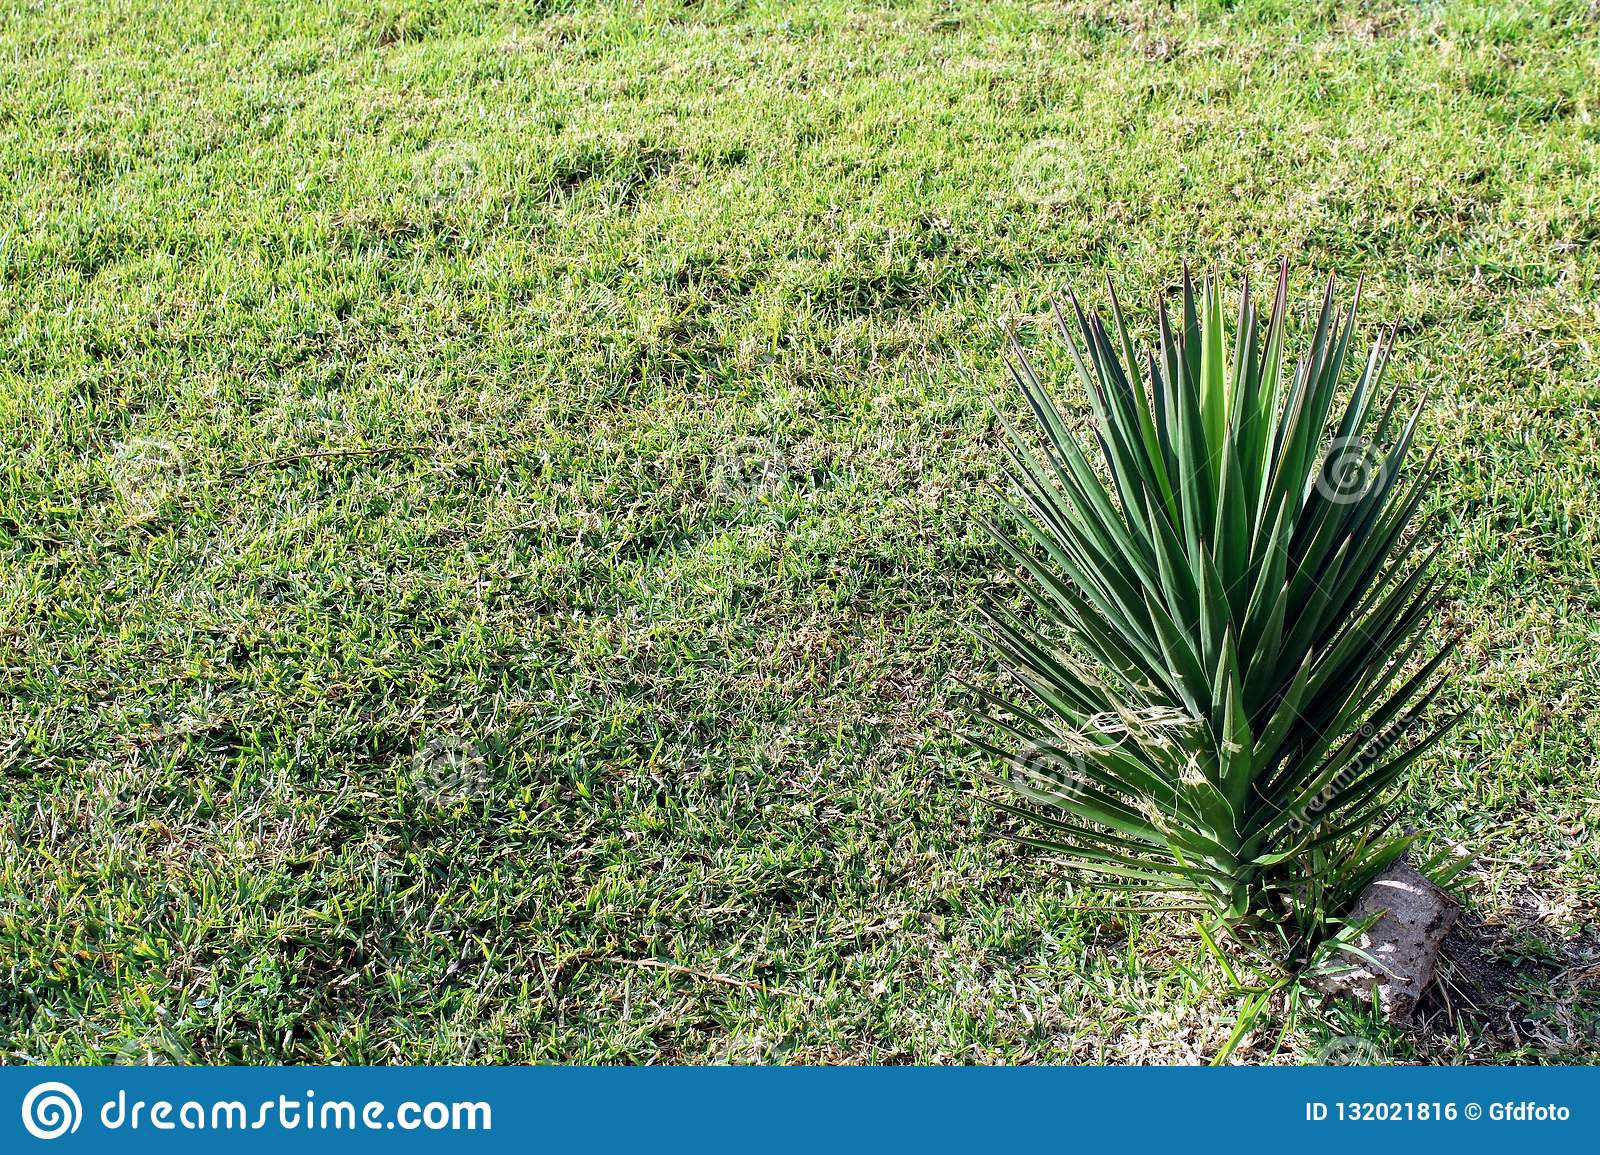 Natural grass end small palm